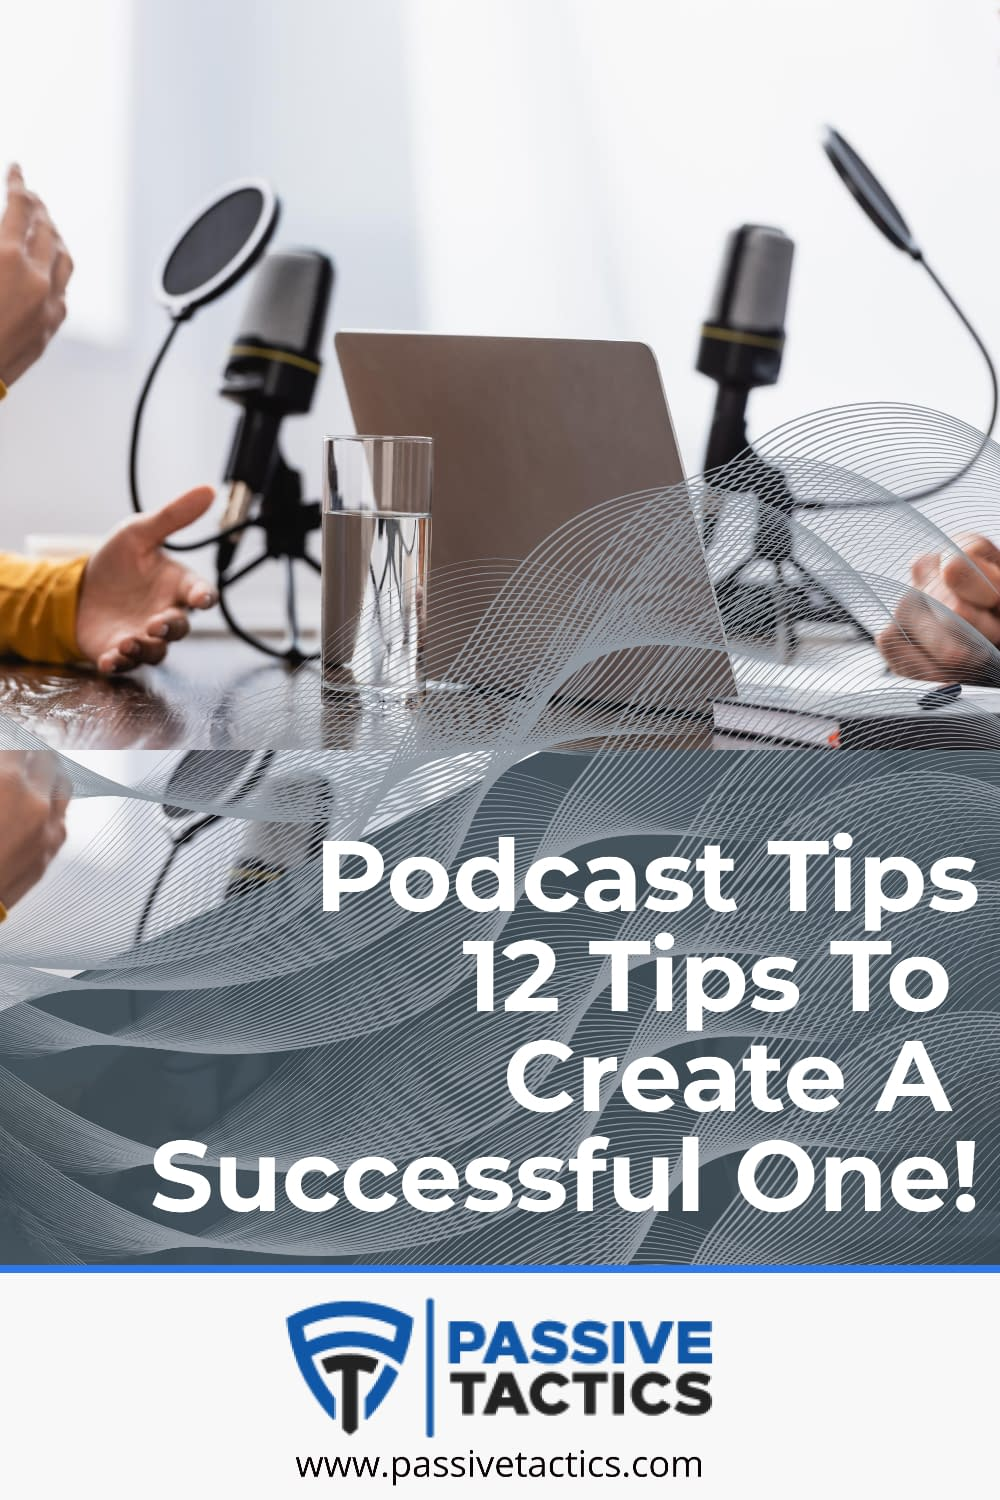 Podcast Tips: 12 Tips To Create A Successful One!